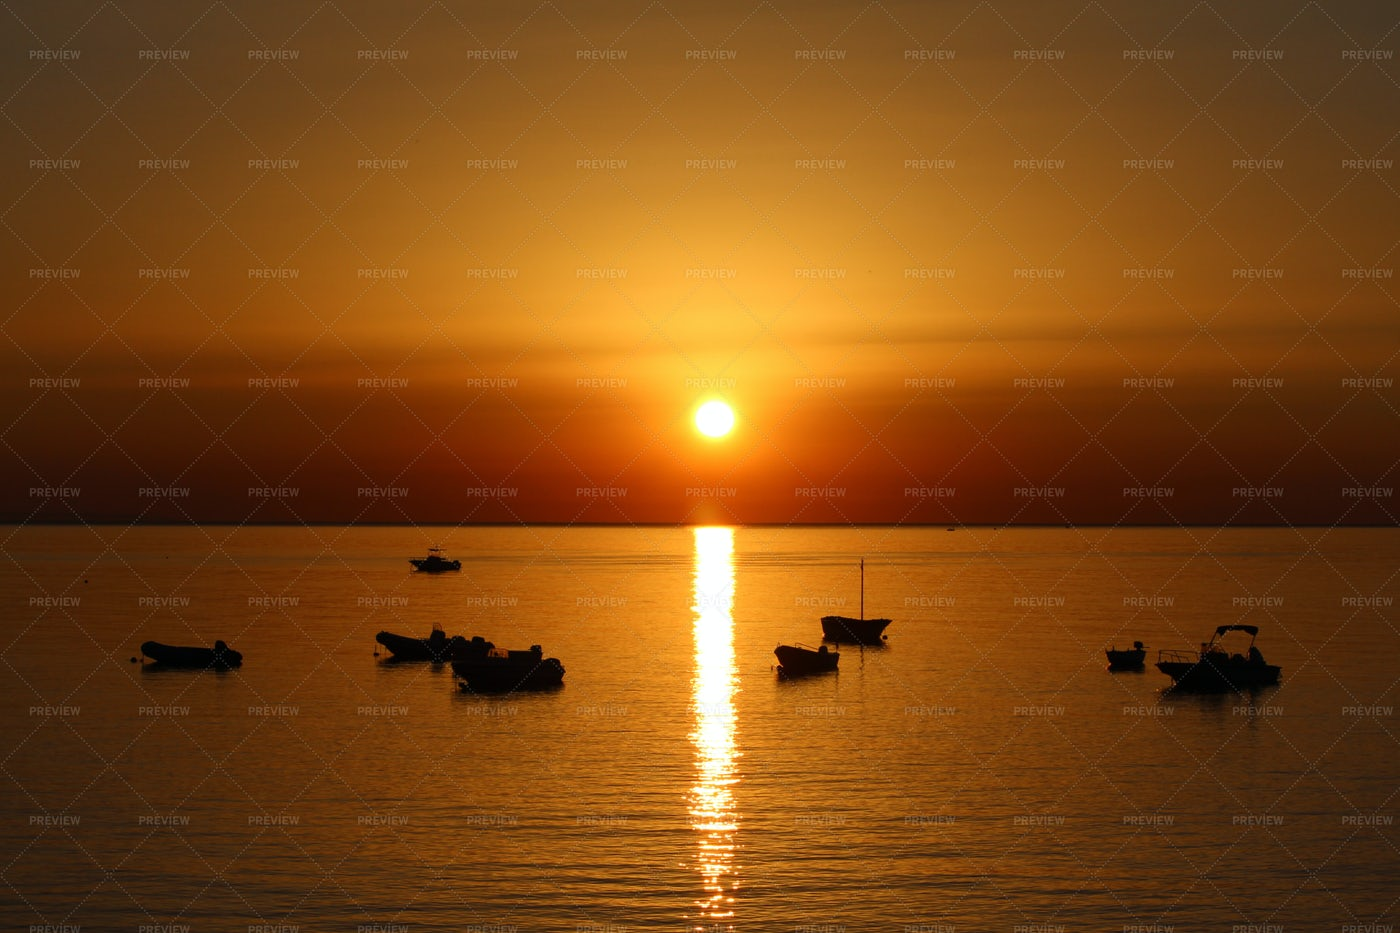 Sea Sunrise Over The Boats: Stock Photos